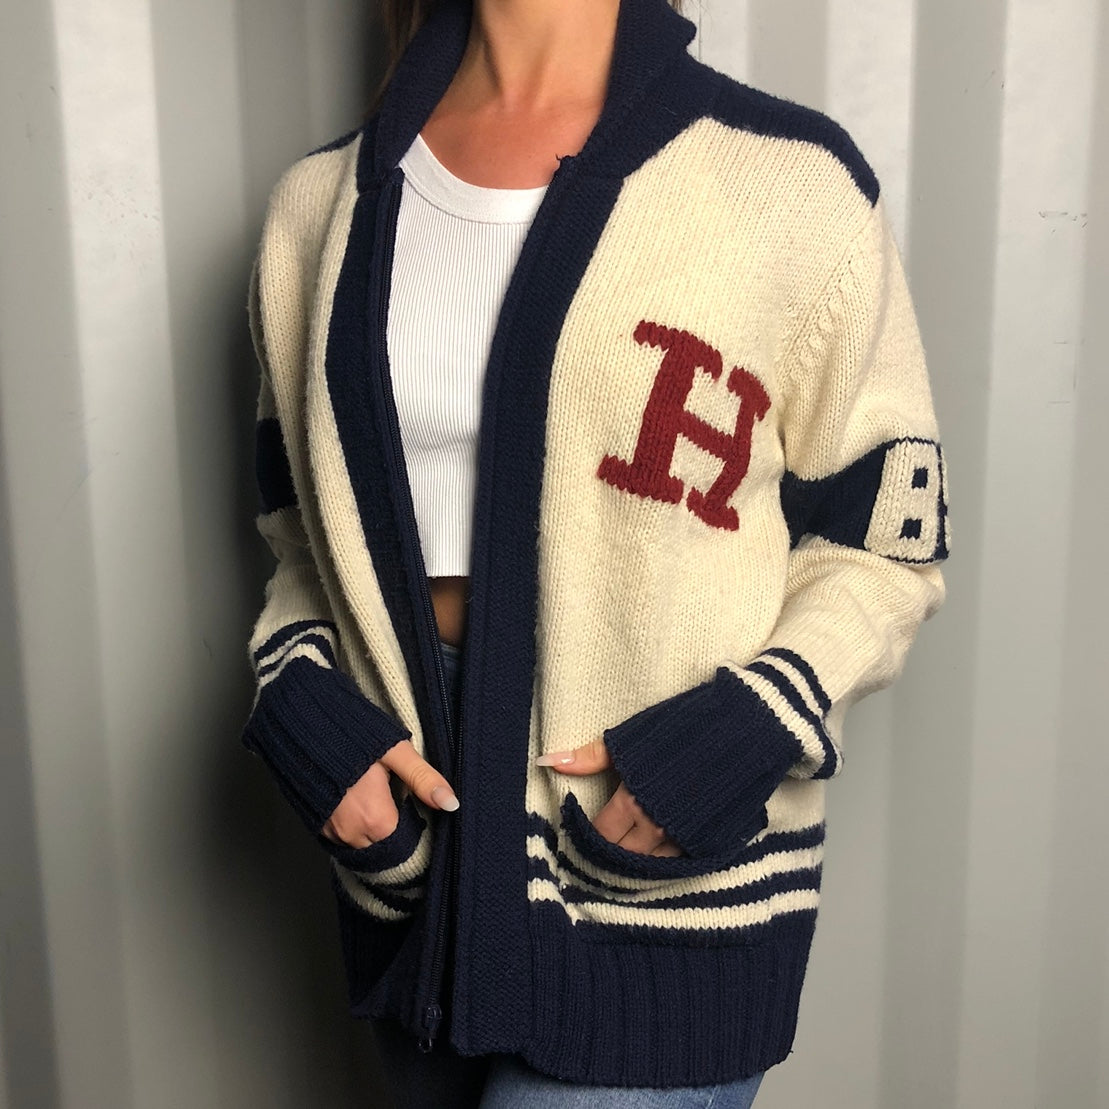 Vintage Tommy Hilfiger Knitted Wool Cardigan